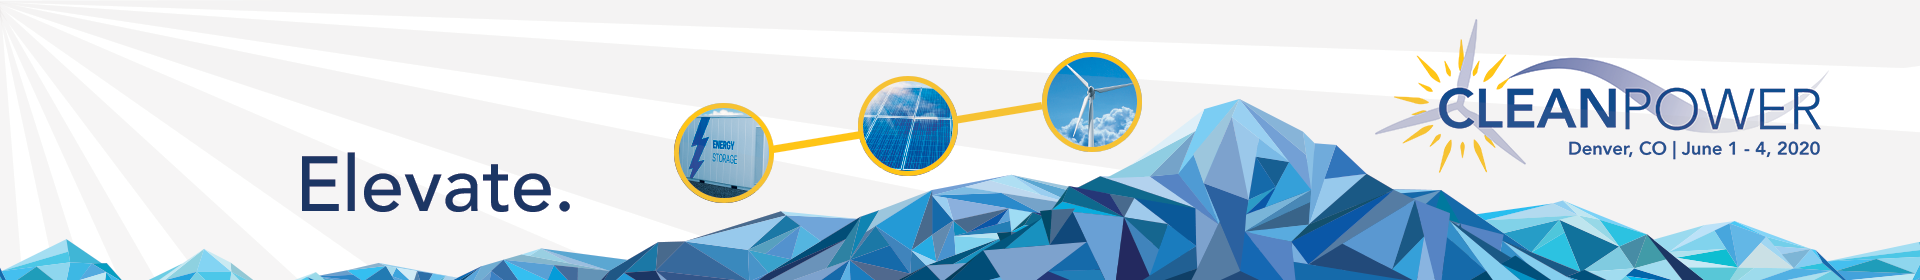 CLEANPOWER 2020 Event Banner